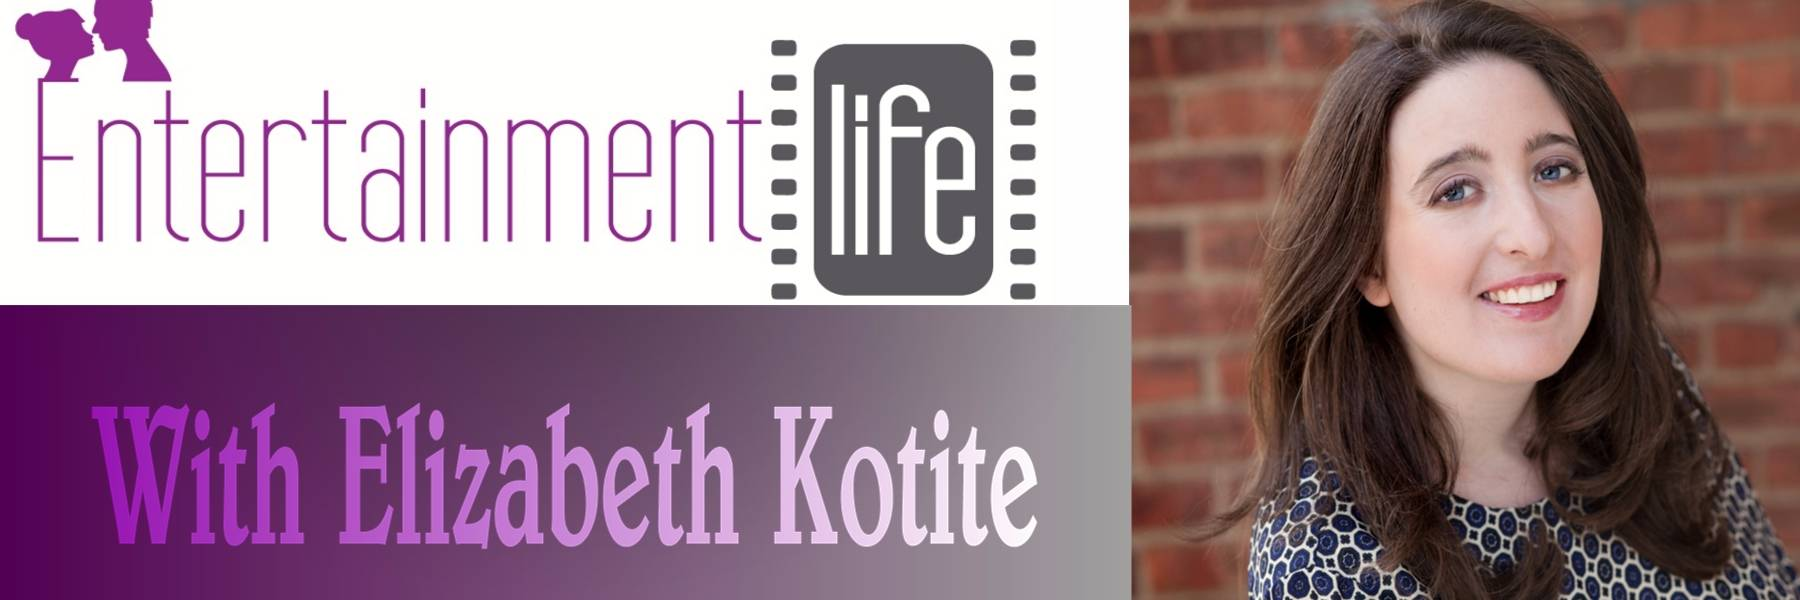 Entertainment Life Coming Soon!